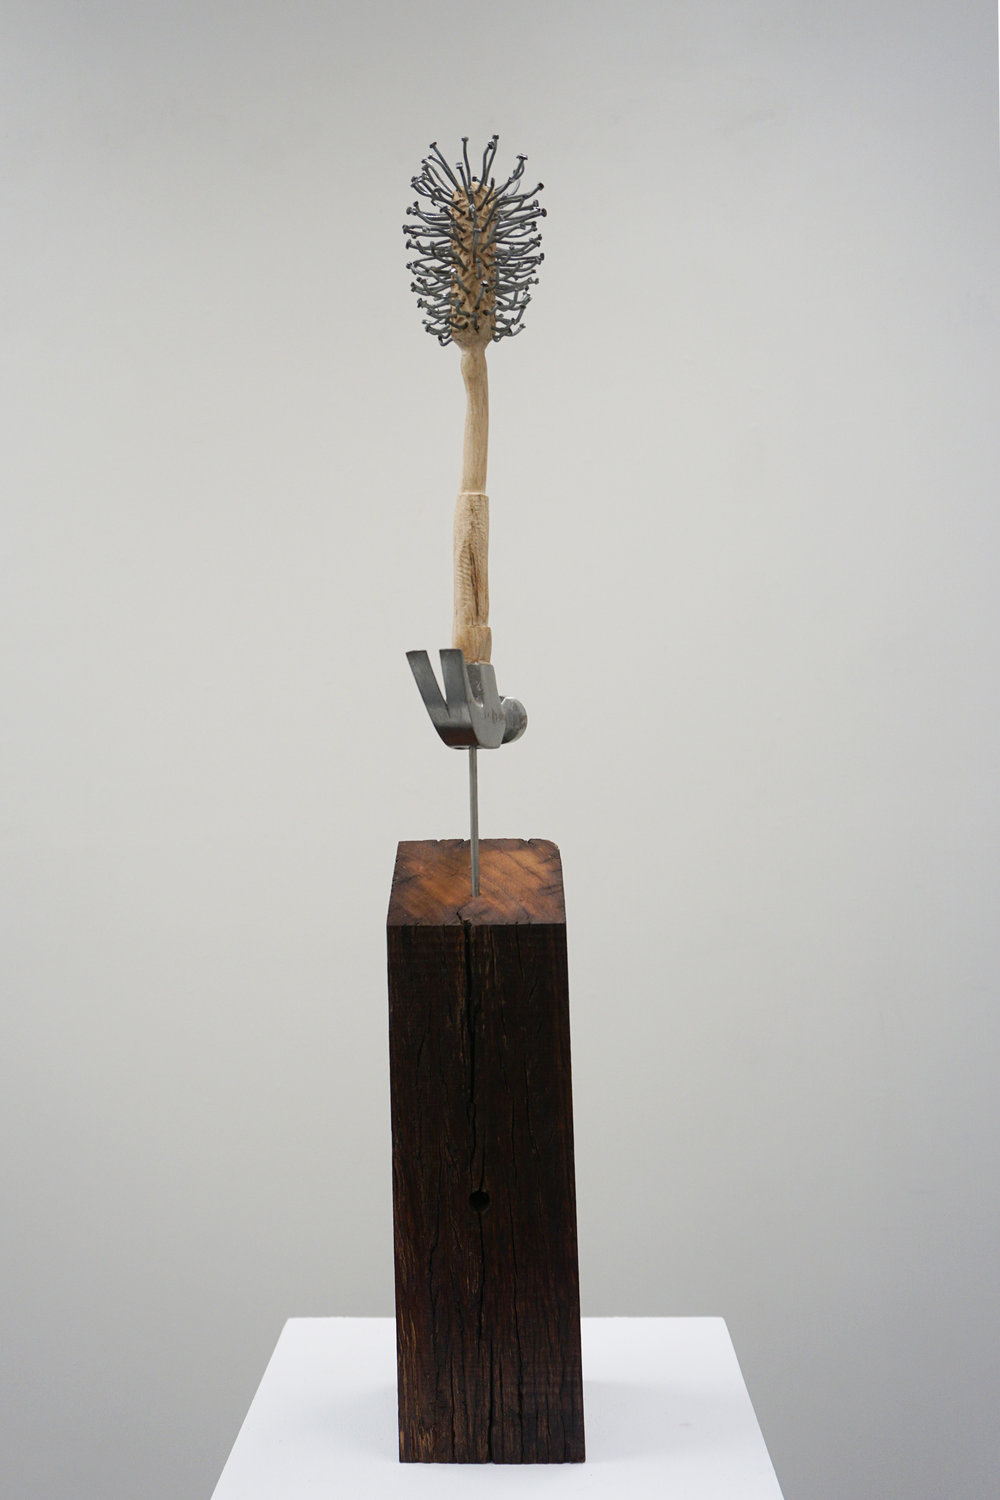 19. Peter Hill, Nice Work, Wandoo, hammer, galvanised nails, stainless steel rod, 75 x 10 x 10 cm $1,600